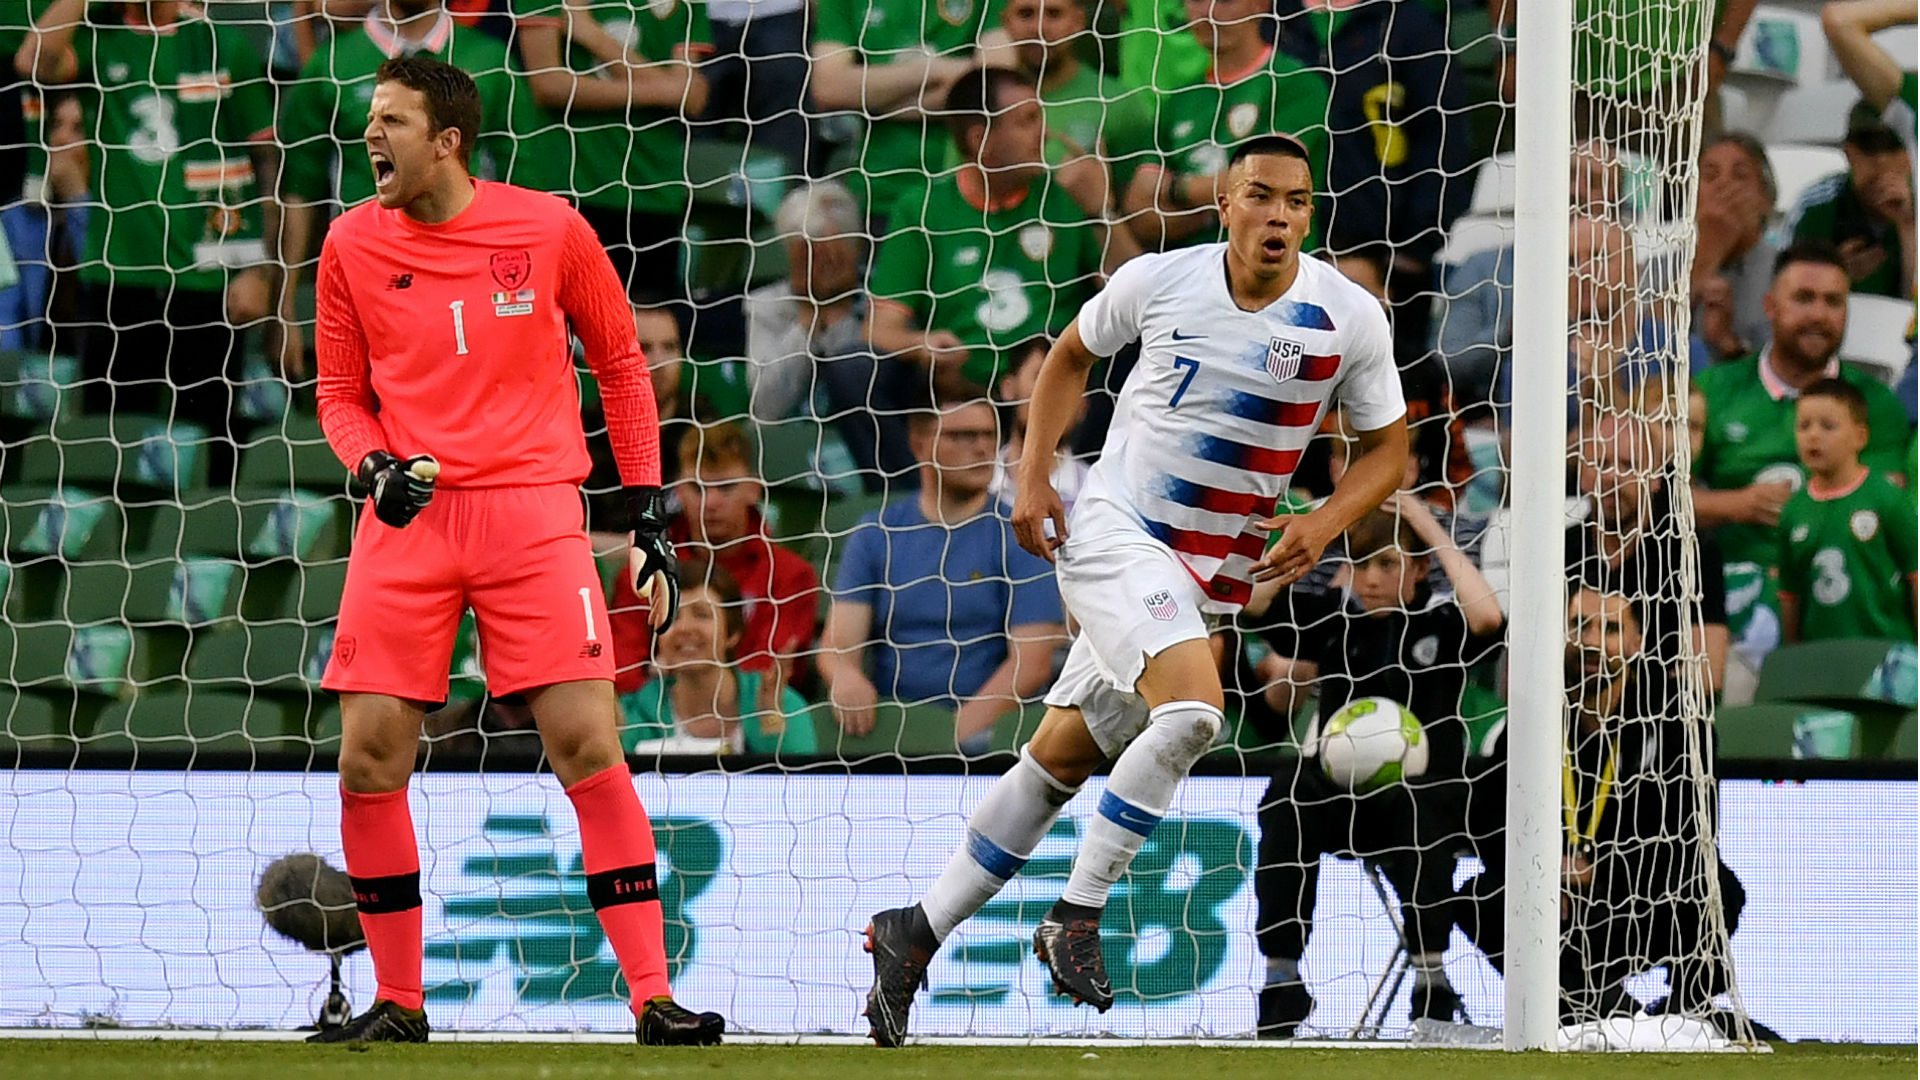 Bobby Wood USA Ireland International friendly 2018